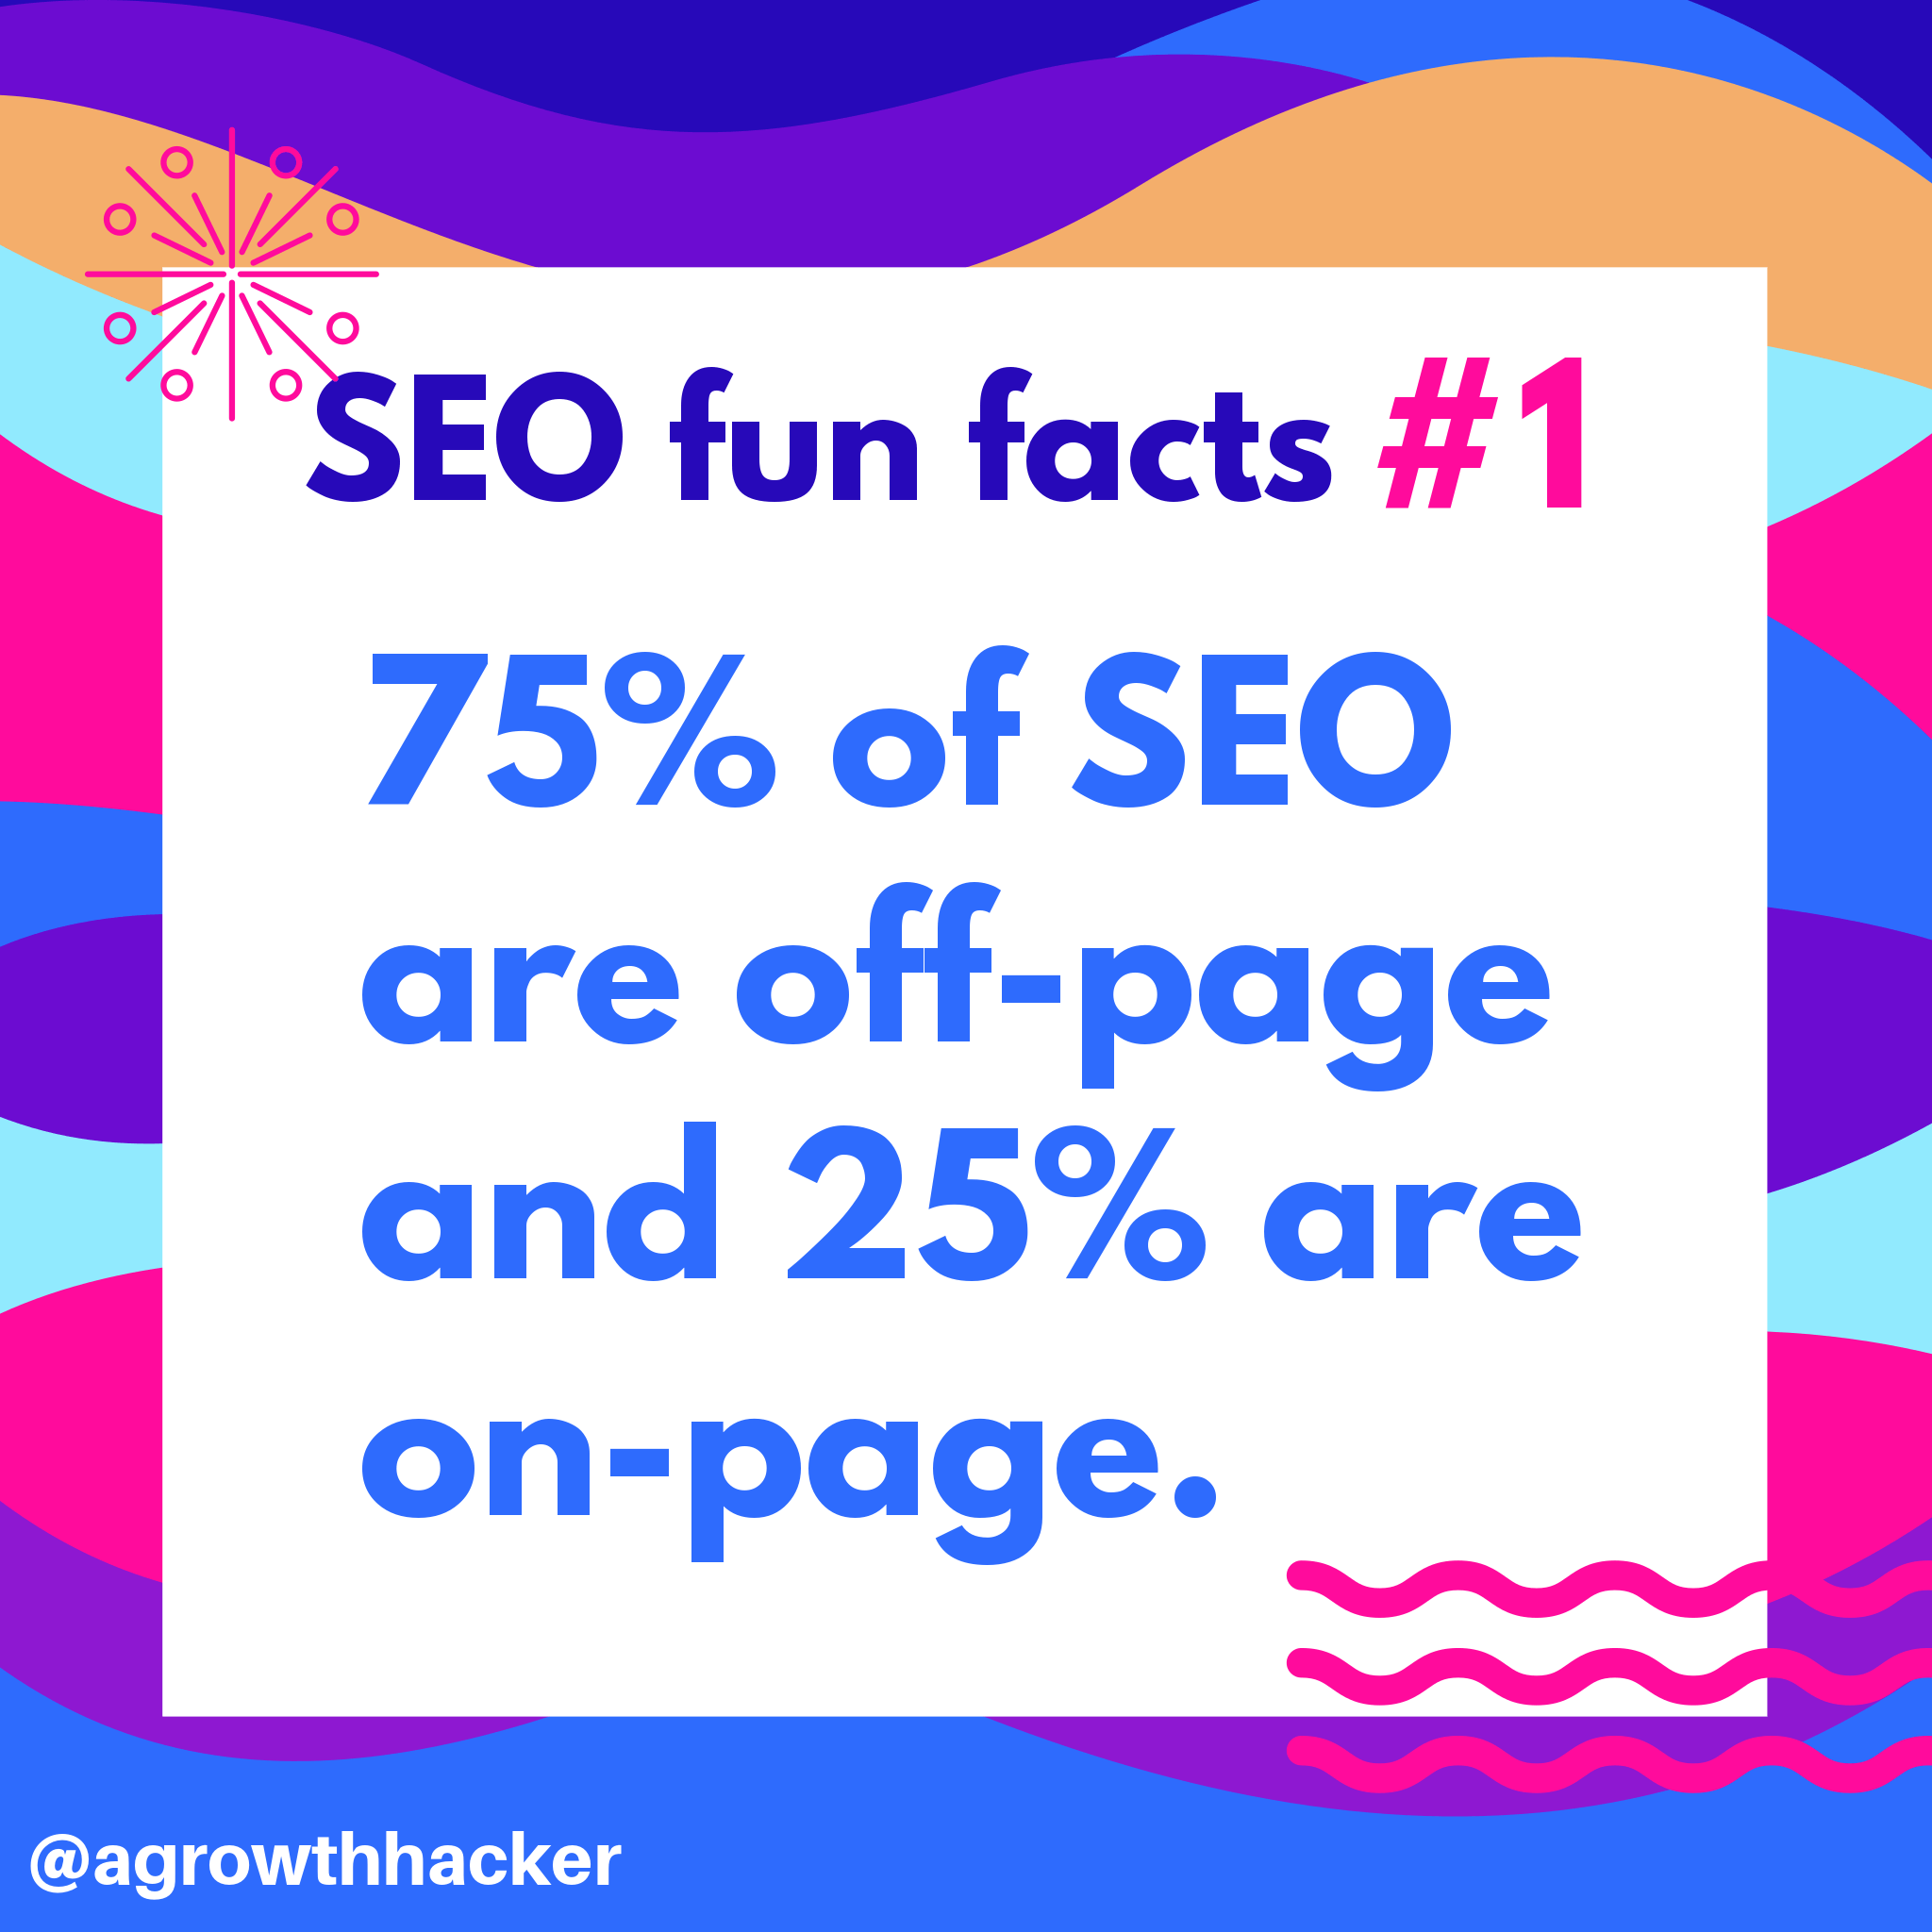 10 fun facts about SEO you need to know